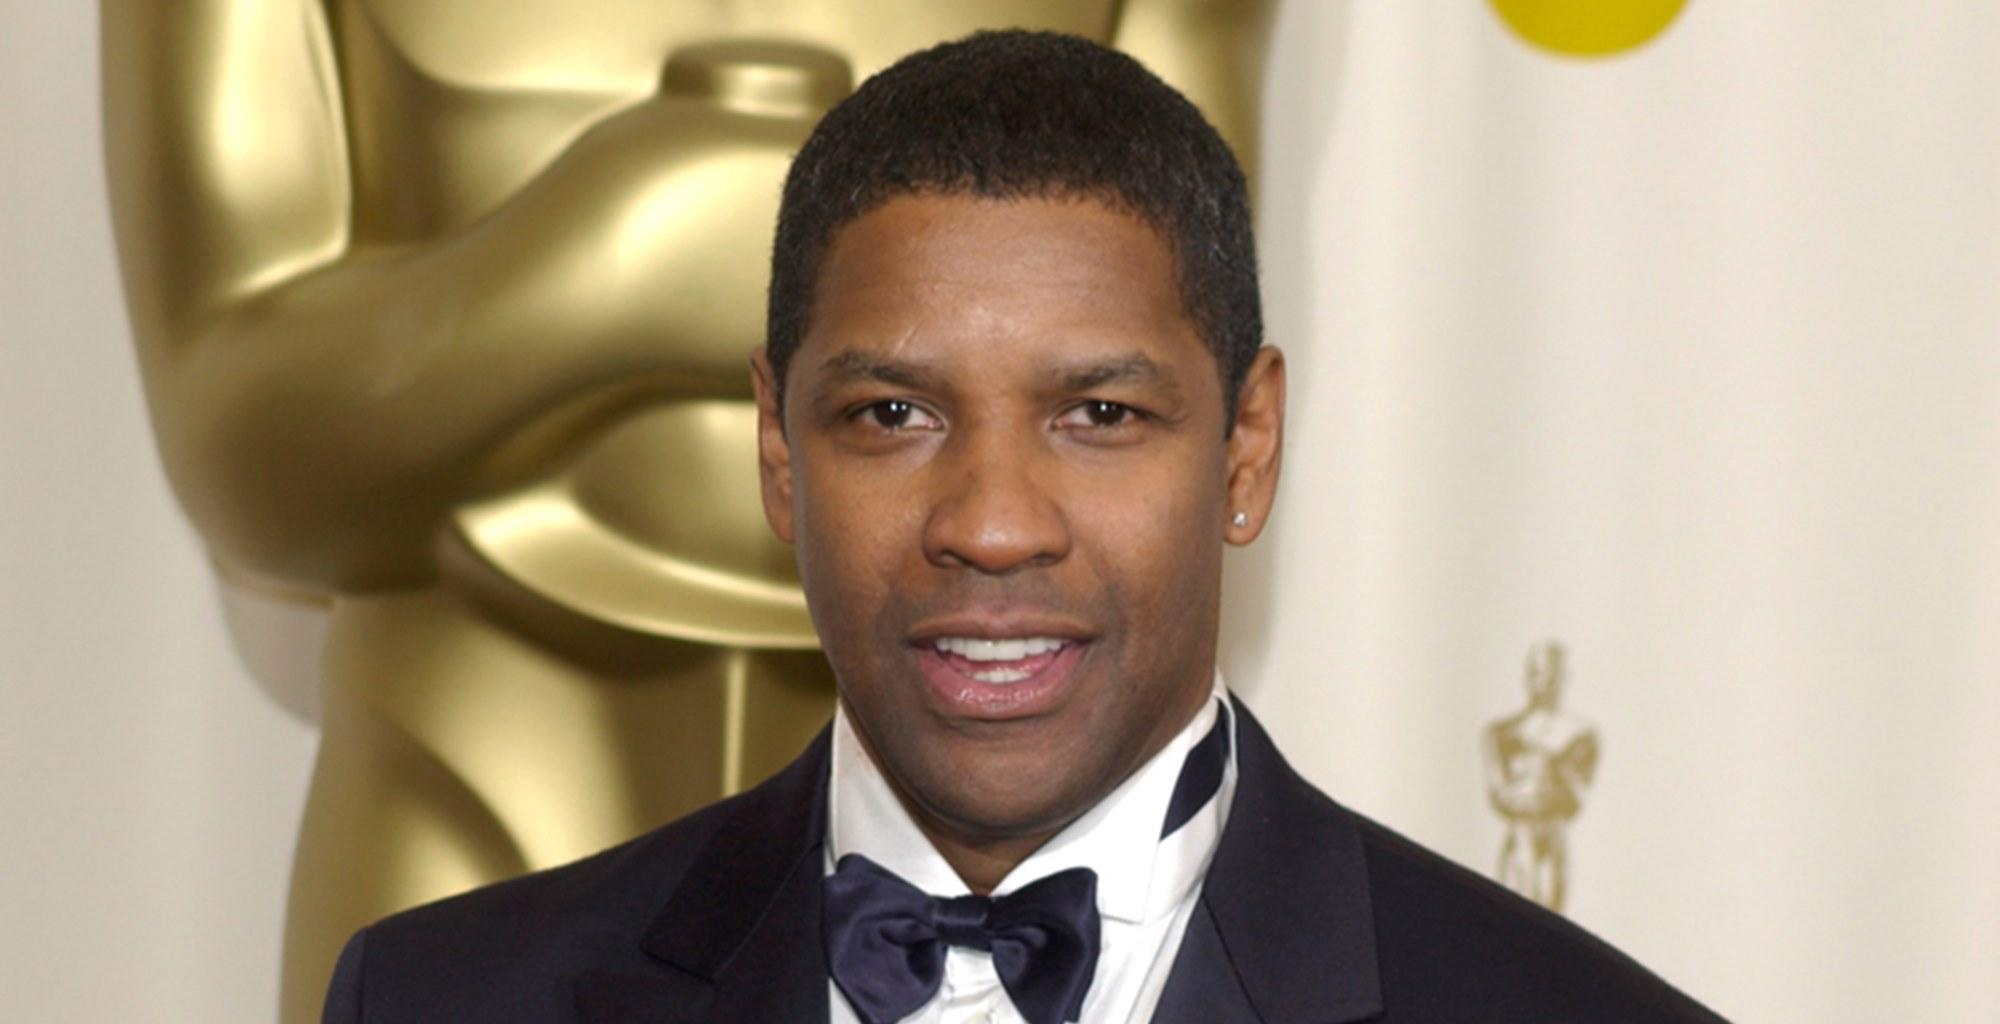 Katie Couric Is Mercilessly Dragged For Making This Eye-Popping Comment About Denzel Washington